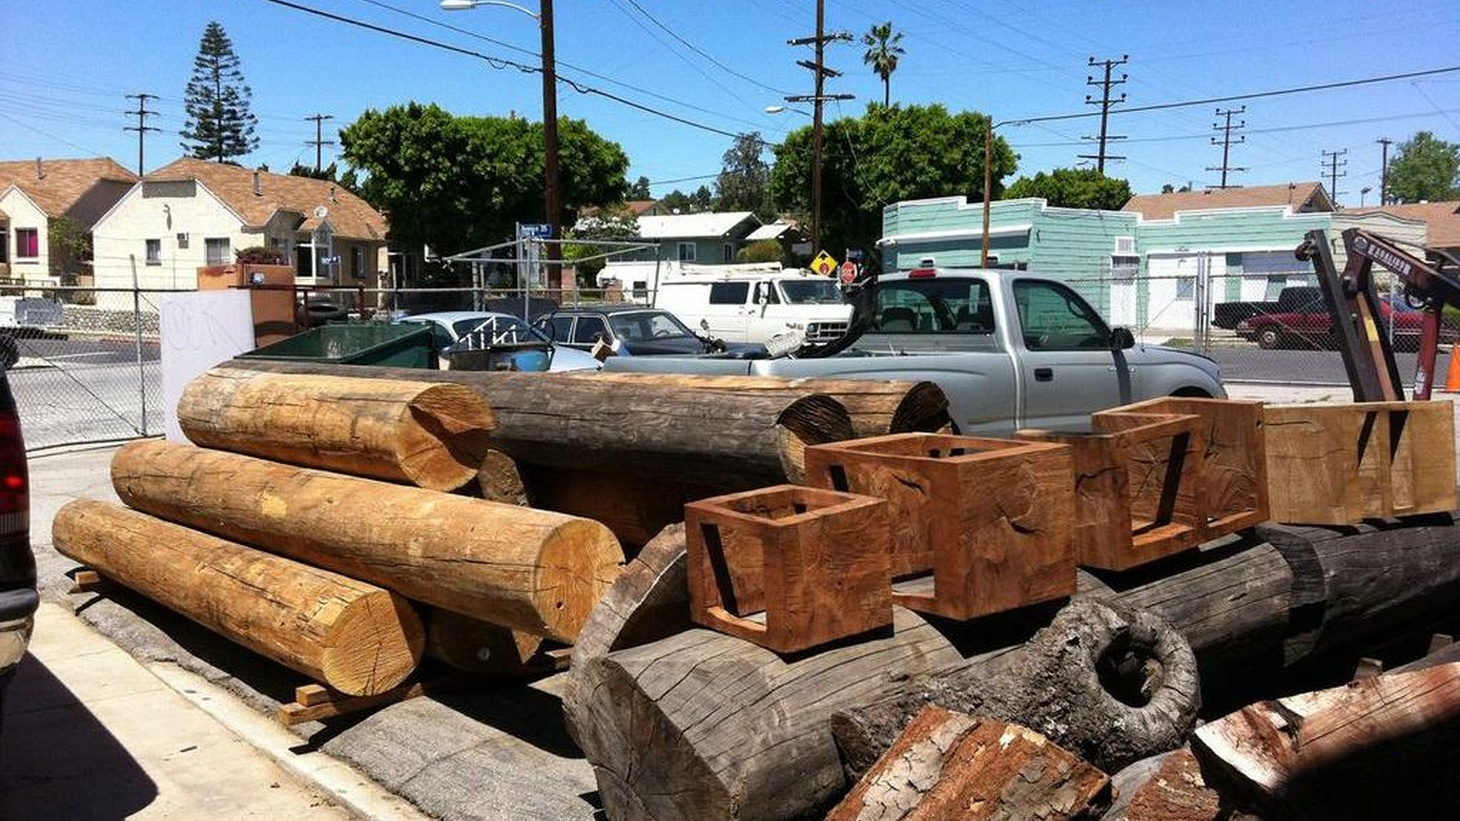 Mallery Roberts Morgan talks to Stefan Bishop about transforming wood, and his life. Doug Suisman riffs on the transformation taking place on Wilshire Boulevard.